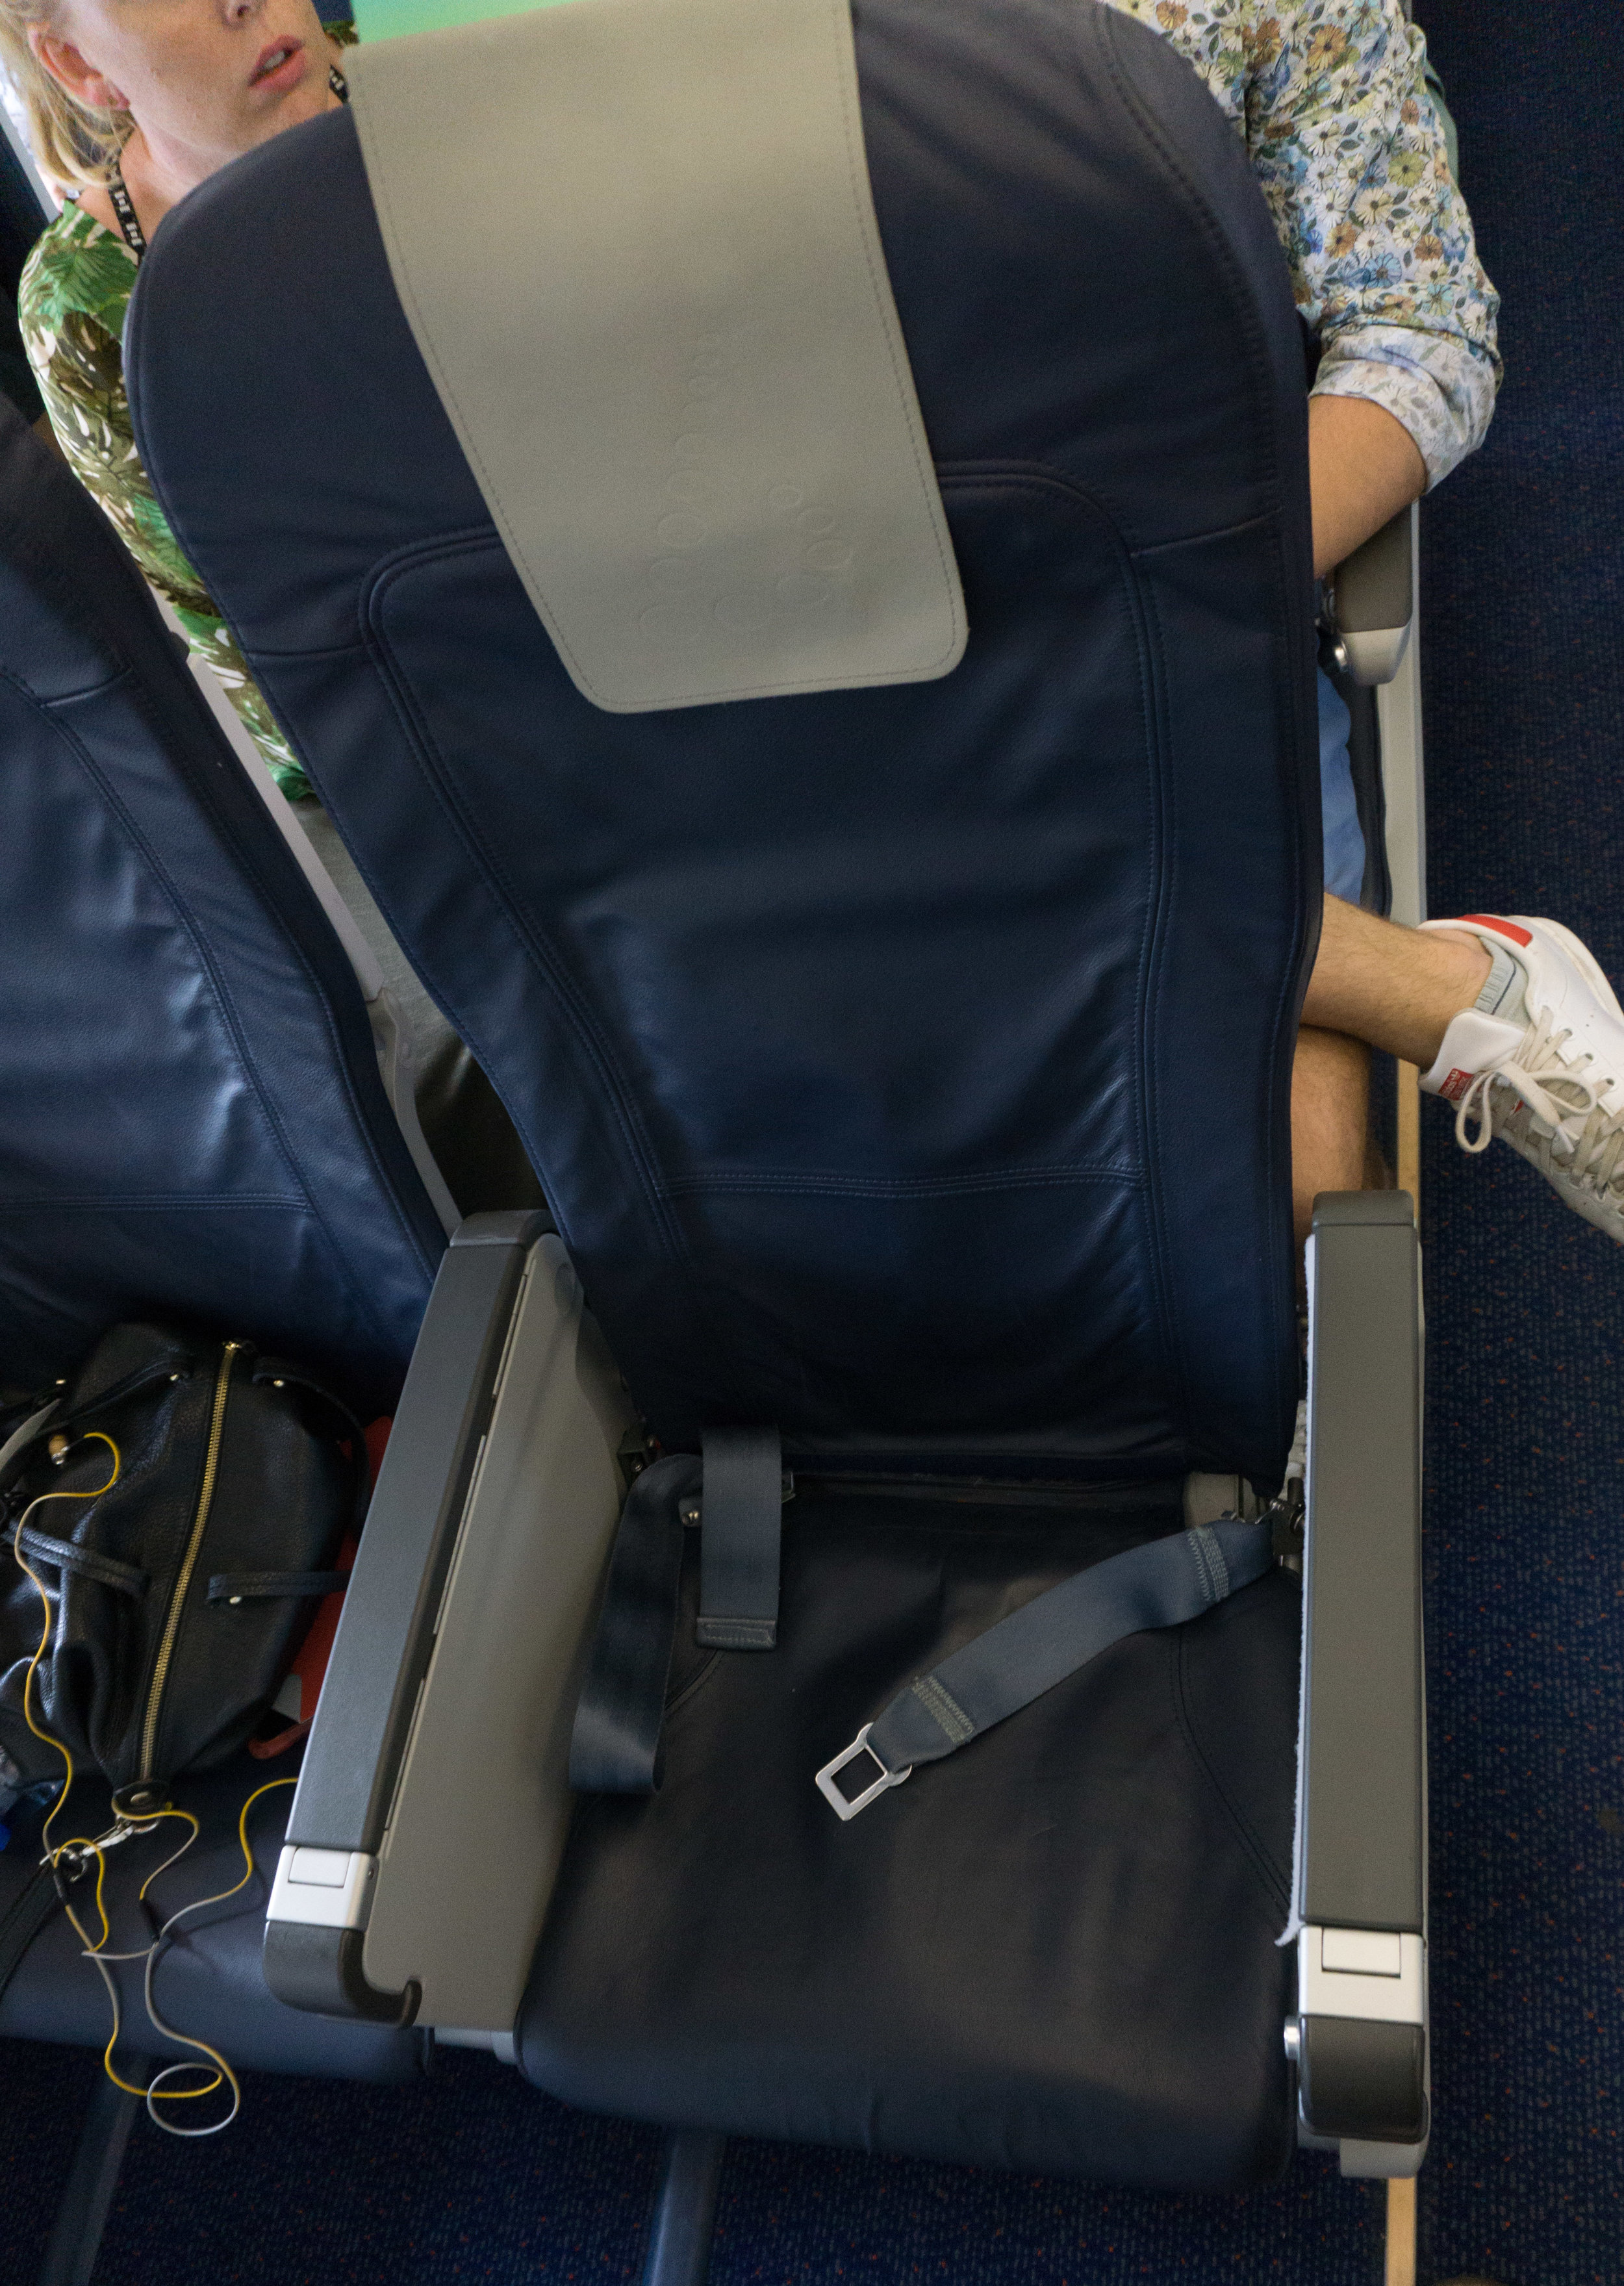 Brussels Airlines European Business Class seat